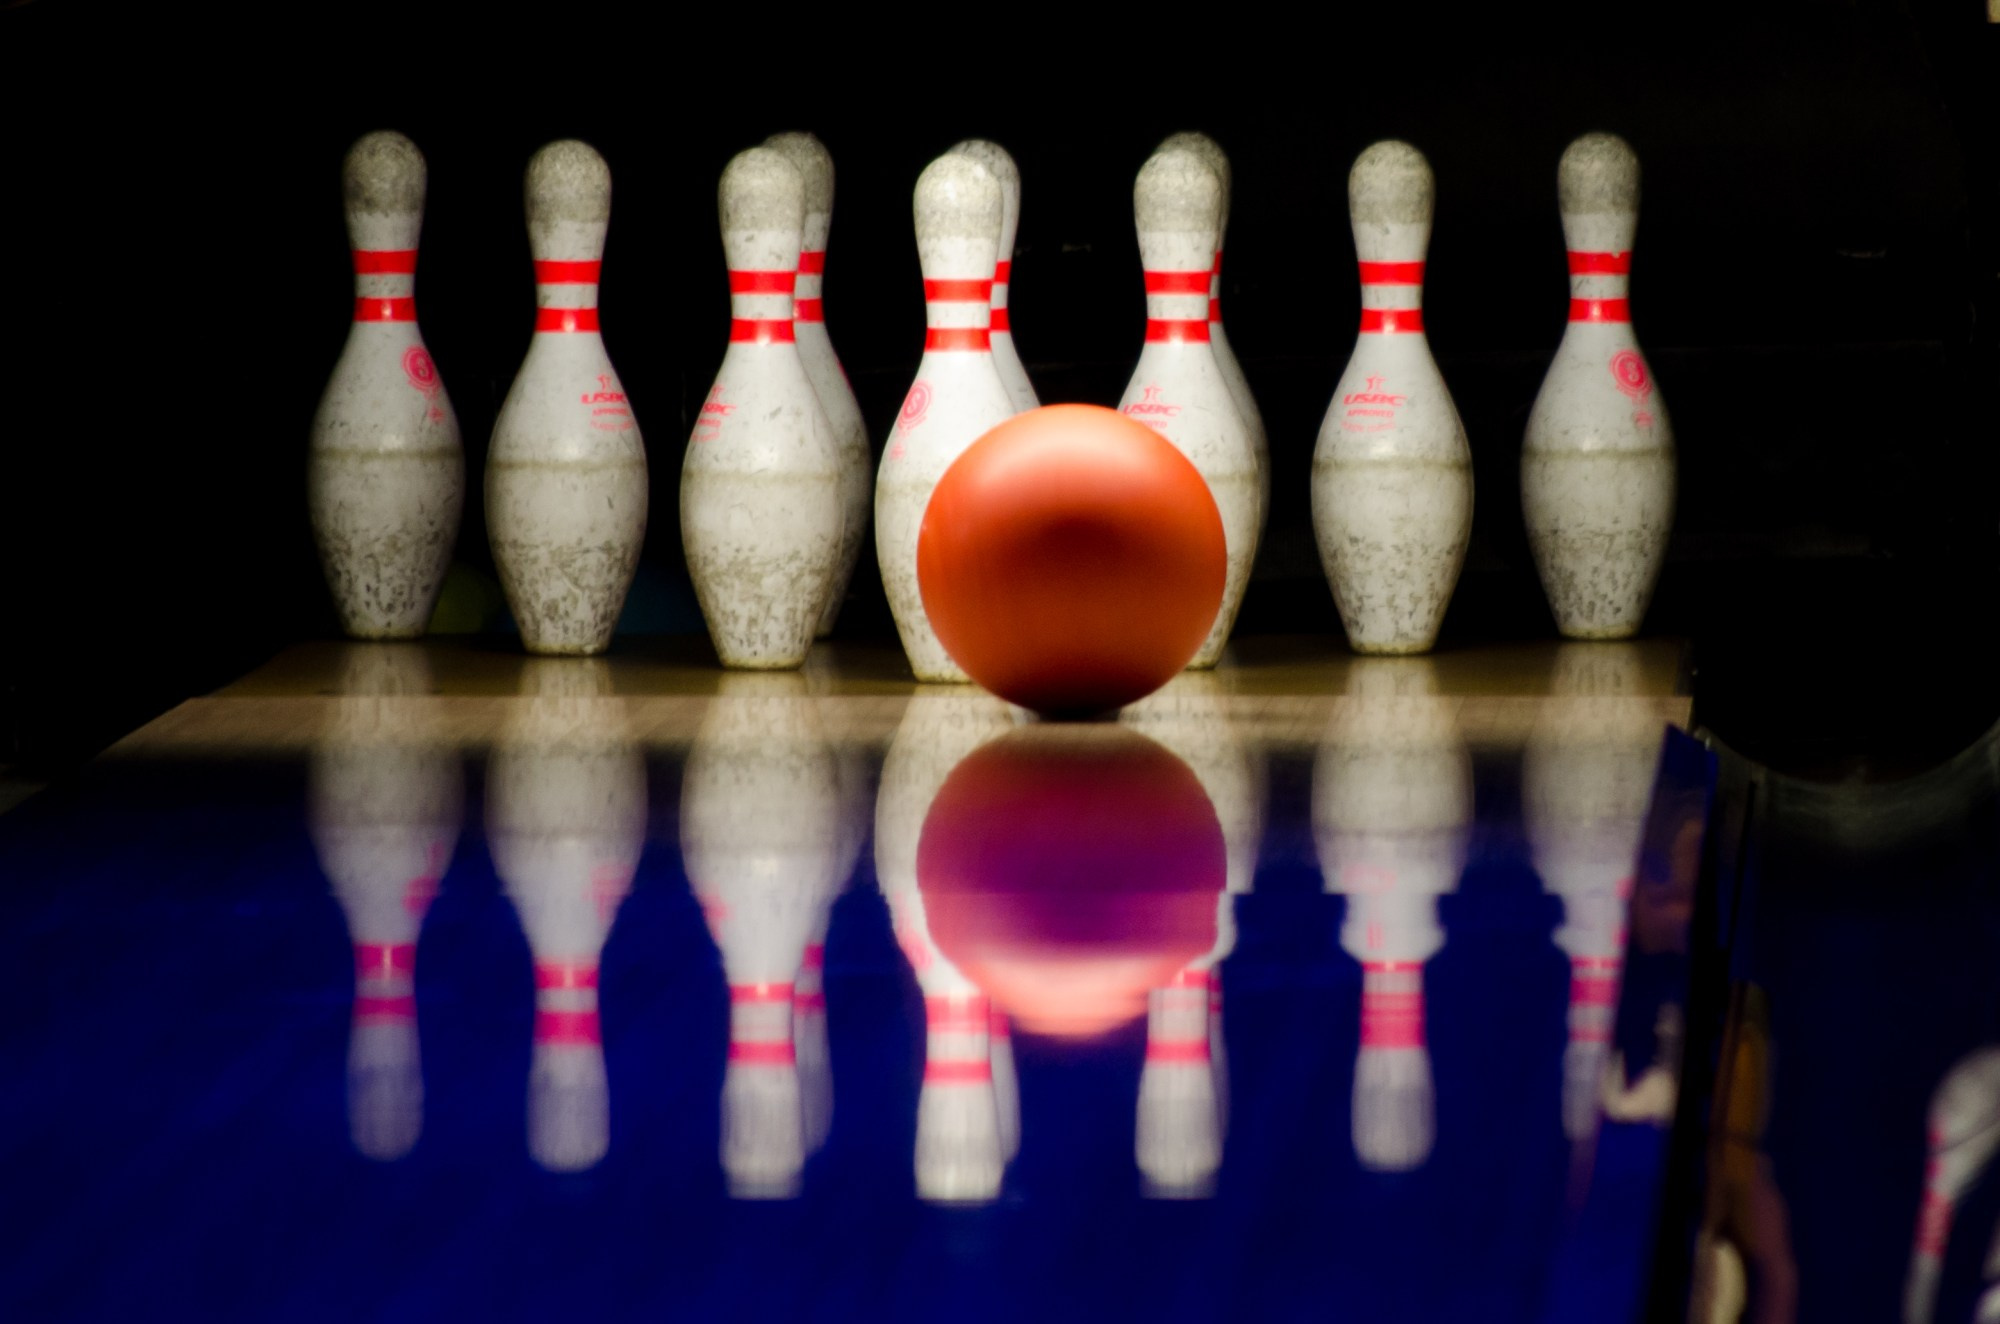 hight resolution of public domain images bowling alley red ball white pins lane